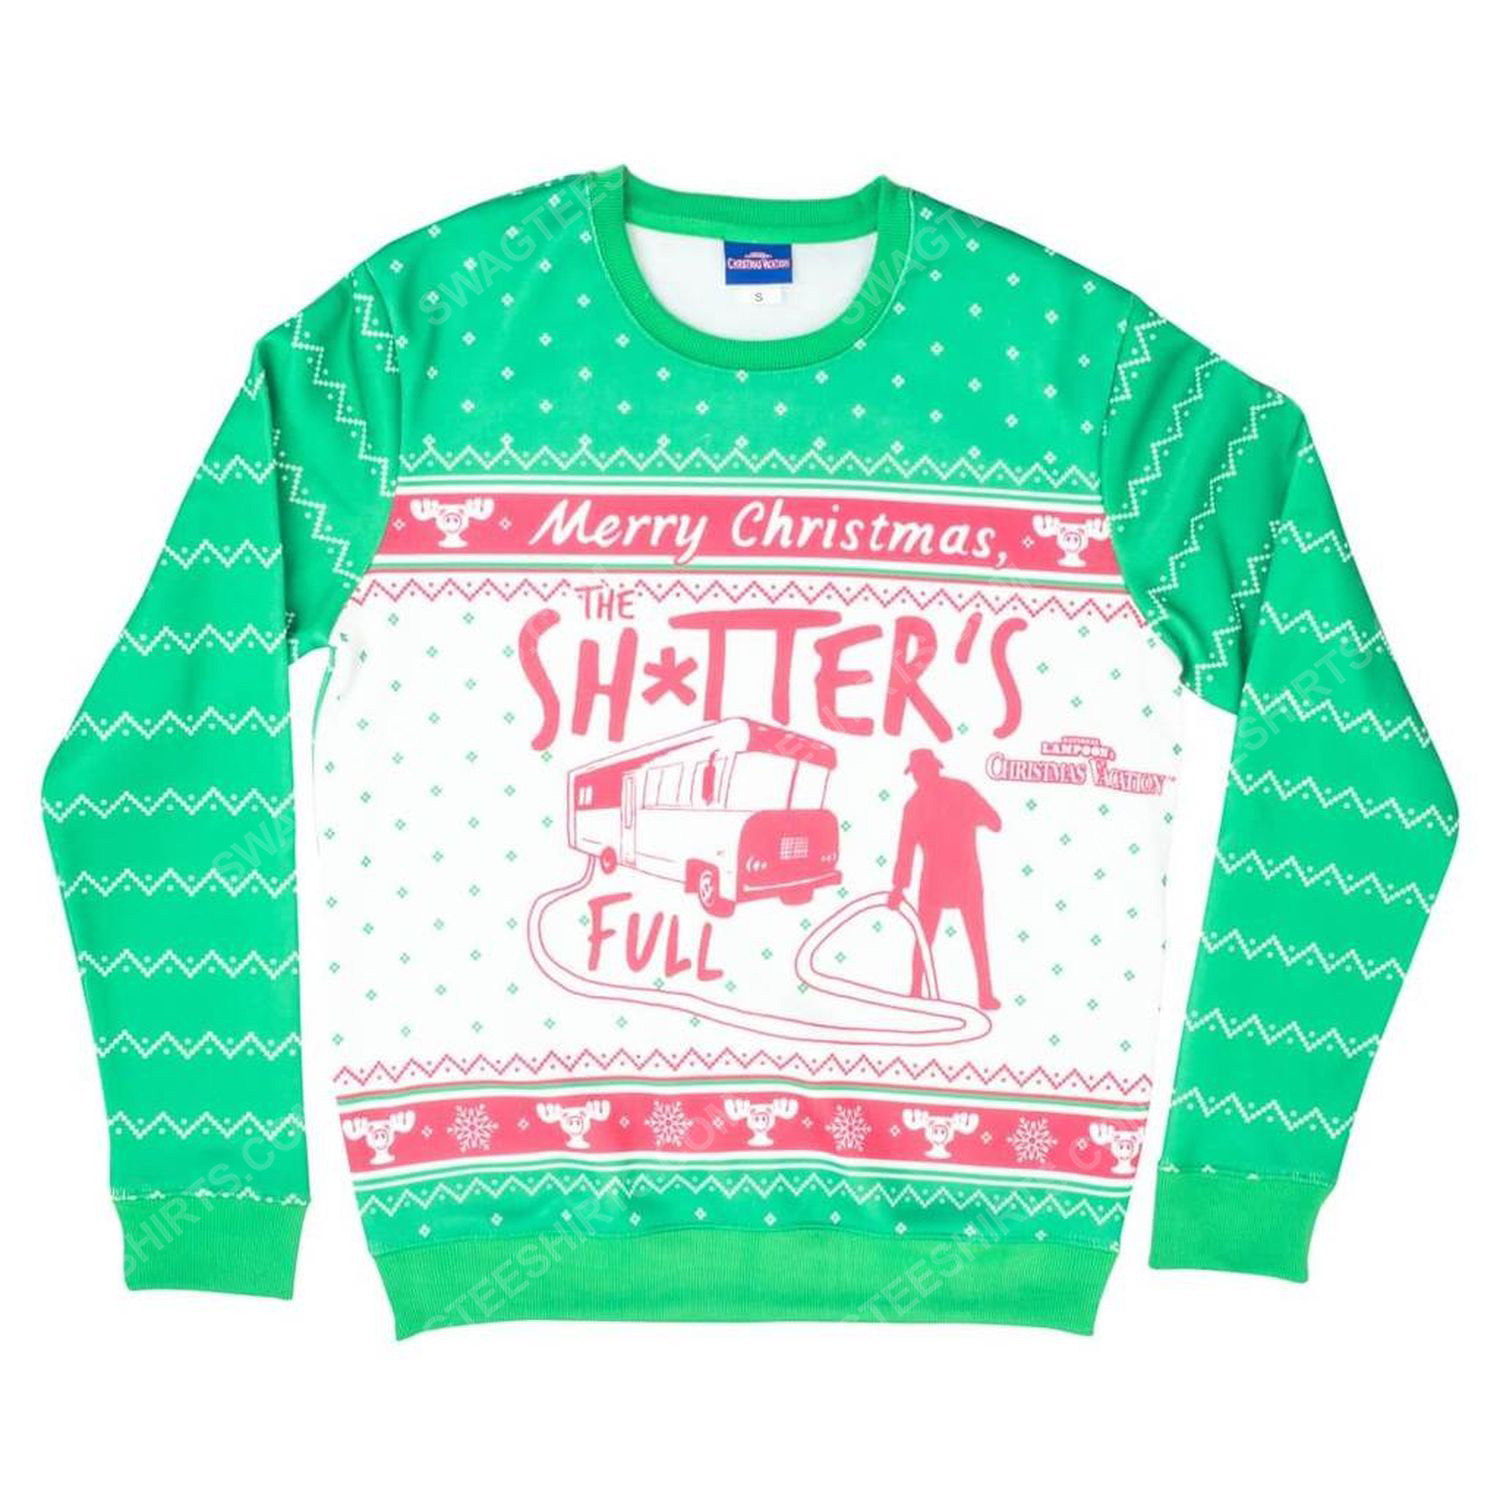 National lampoon's christmas vacation merry christmas shitter was full ugly christmas sweater 2 - Copy